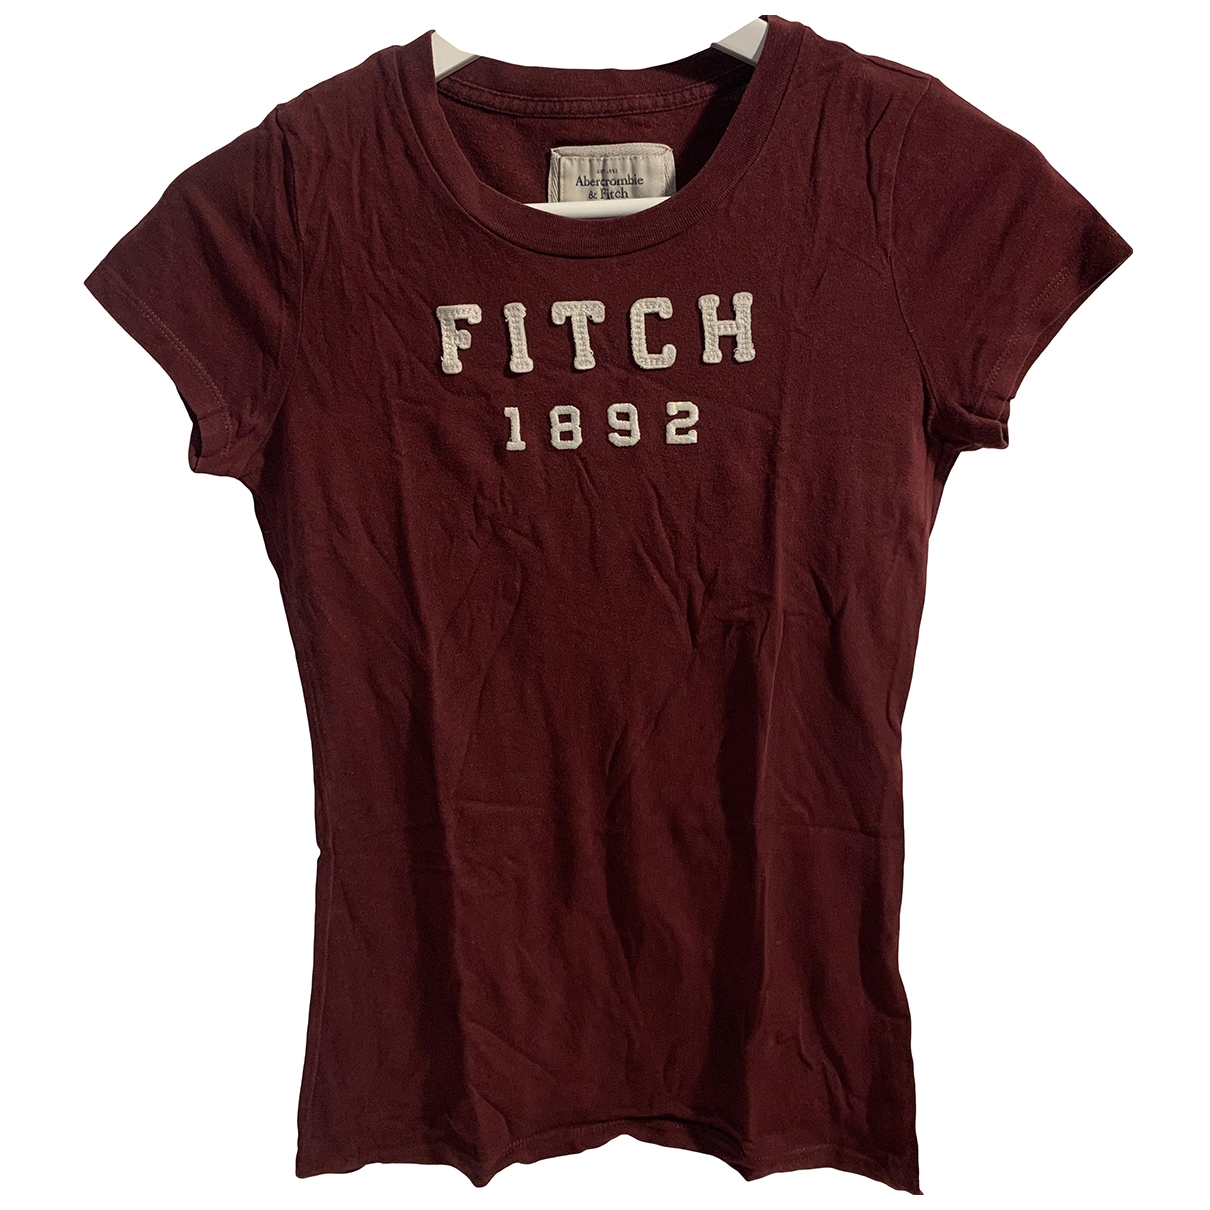 Abercrombie & Fitch \N Burgundy Cotton  top for Women S International